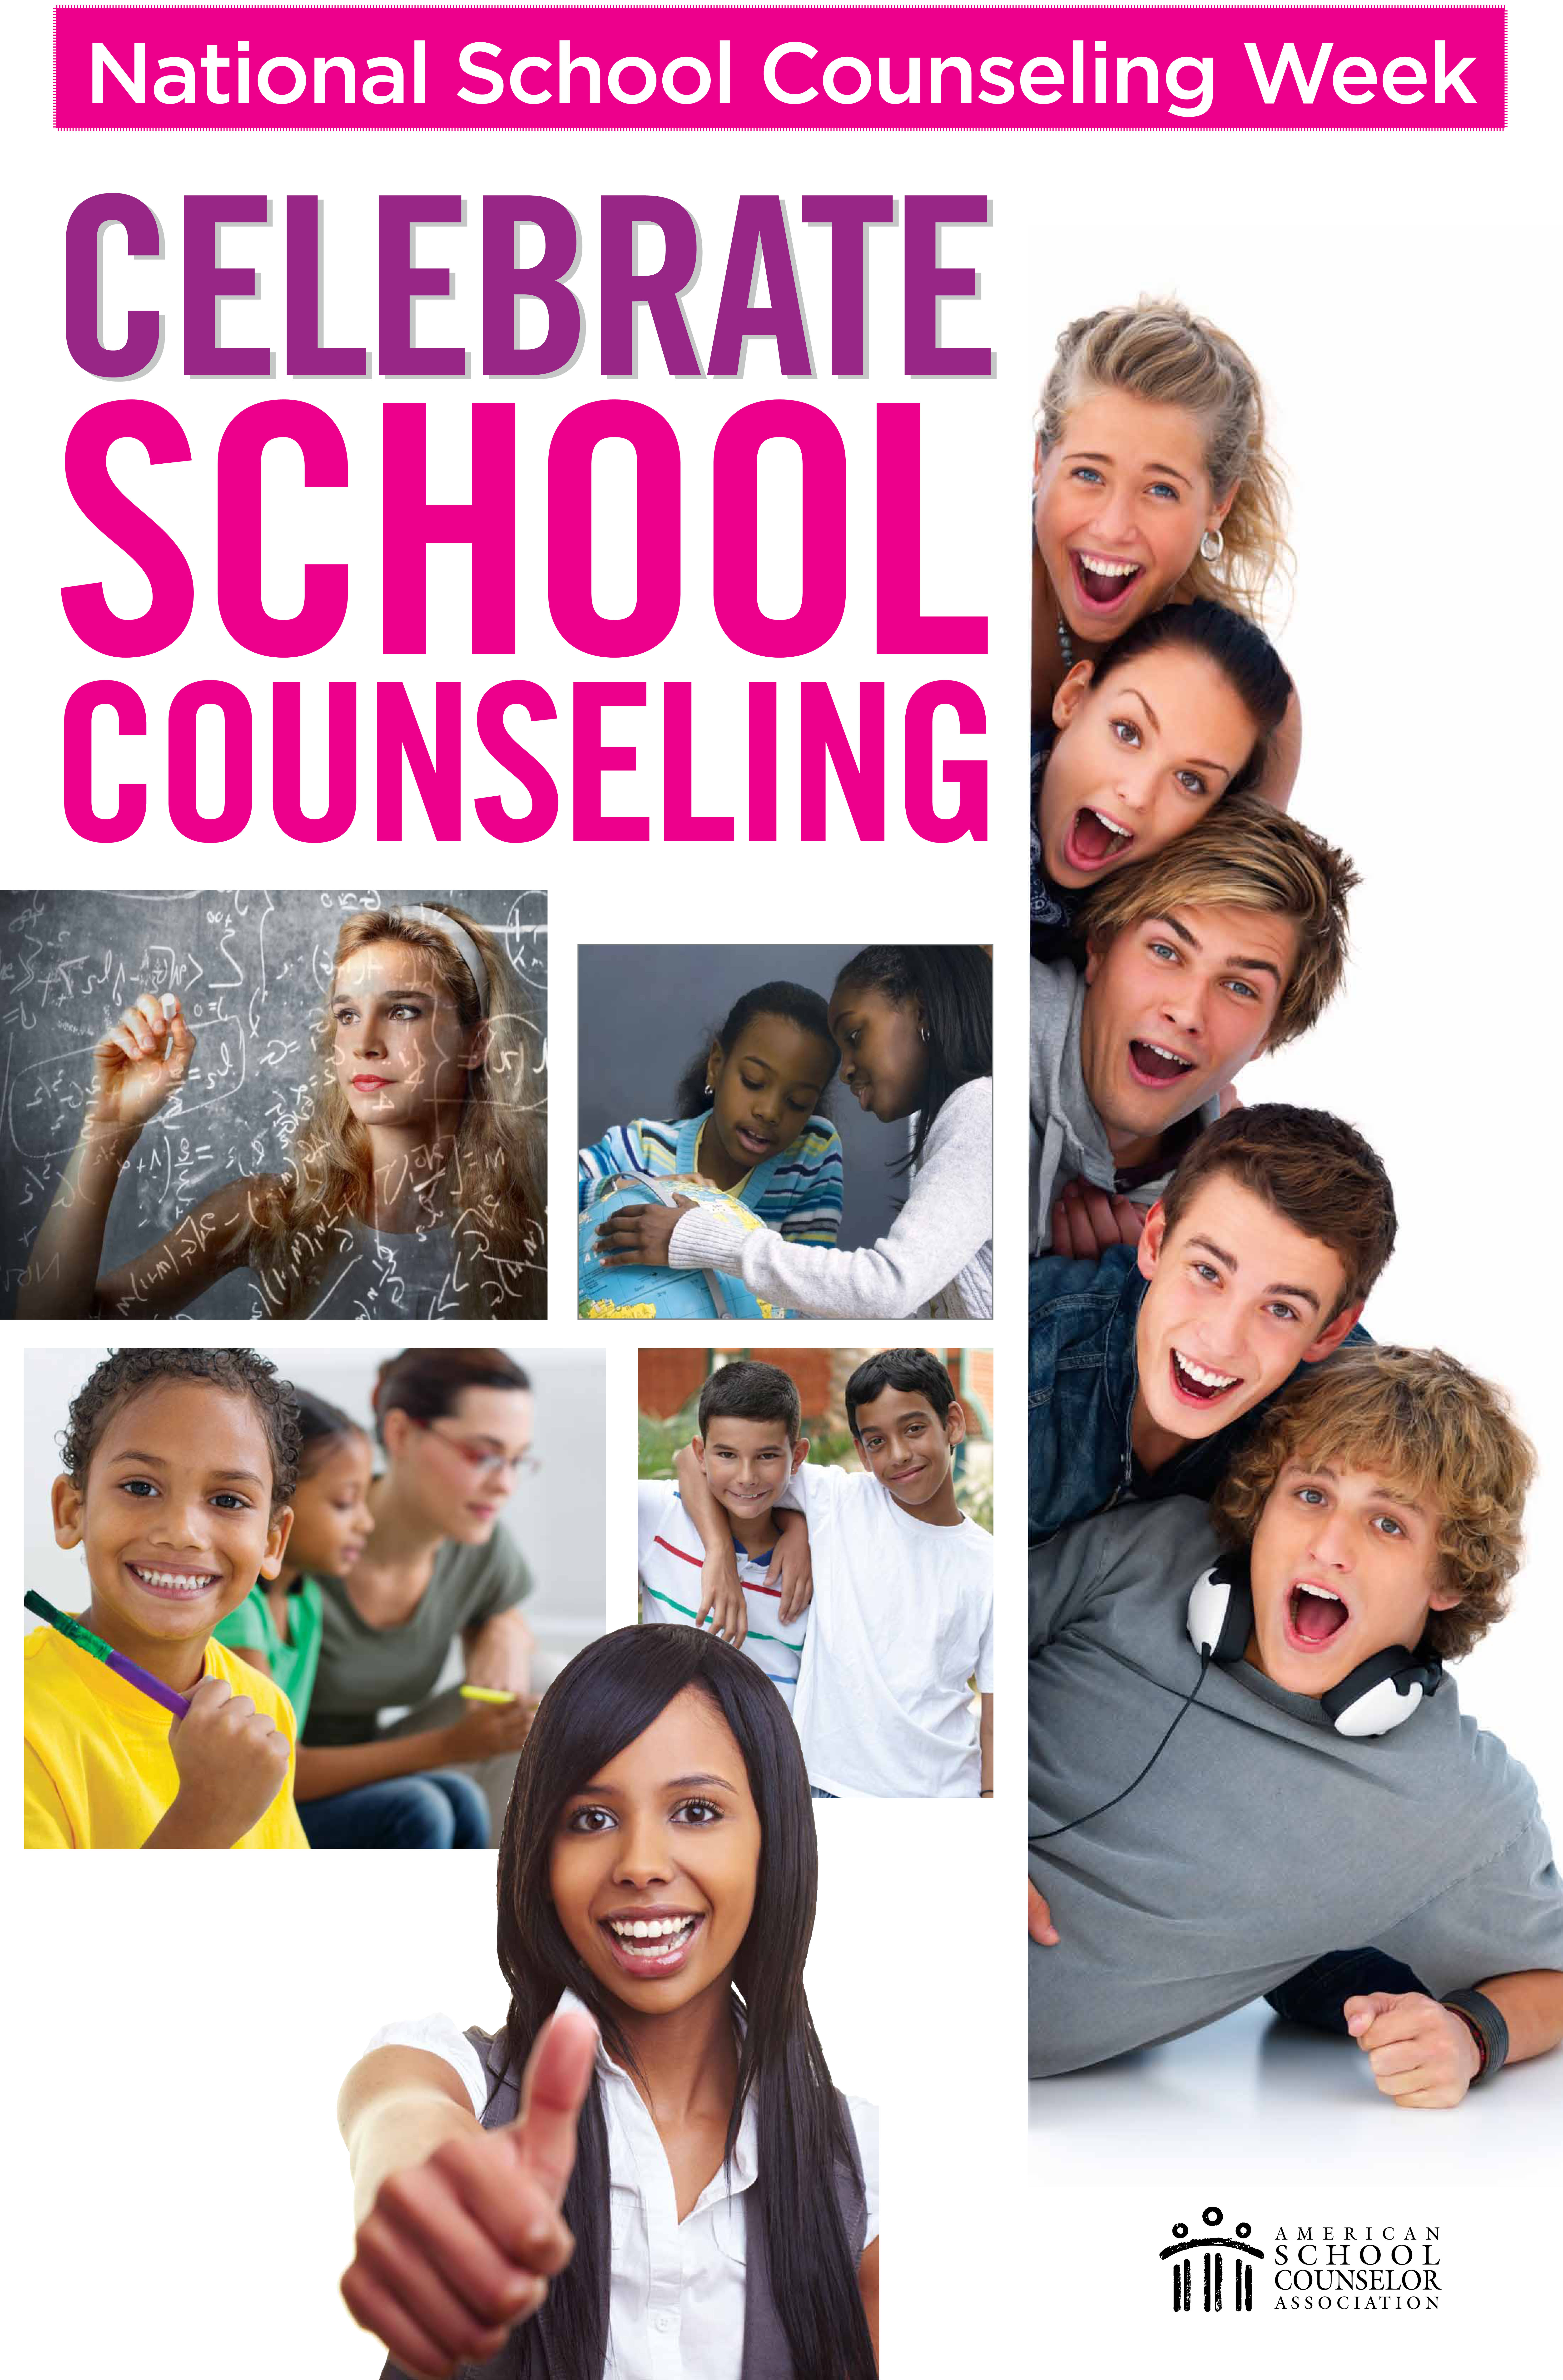 ... School Counselors during National School Counseling Week | The Viking